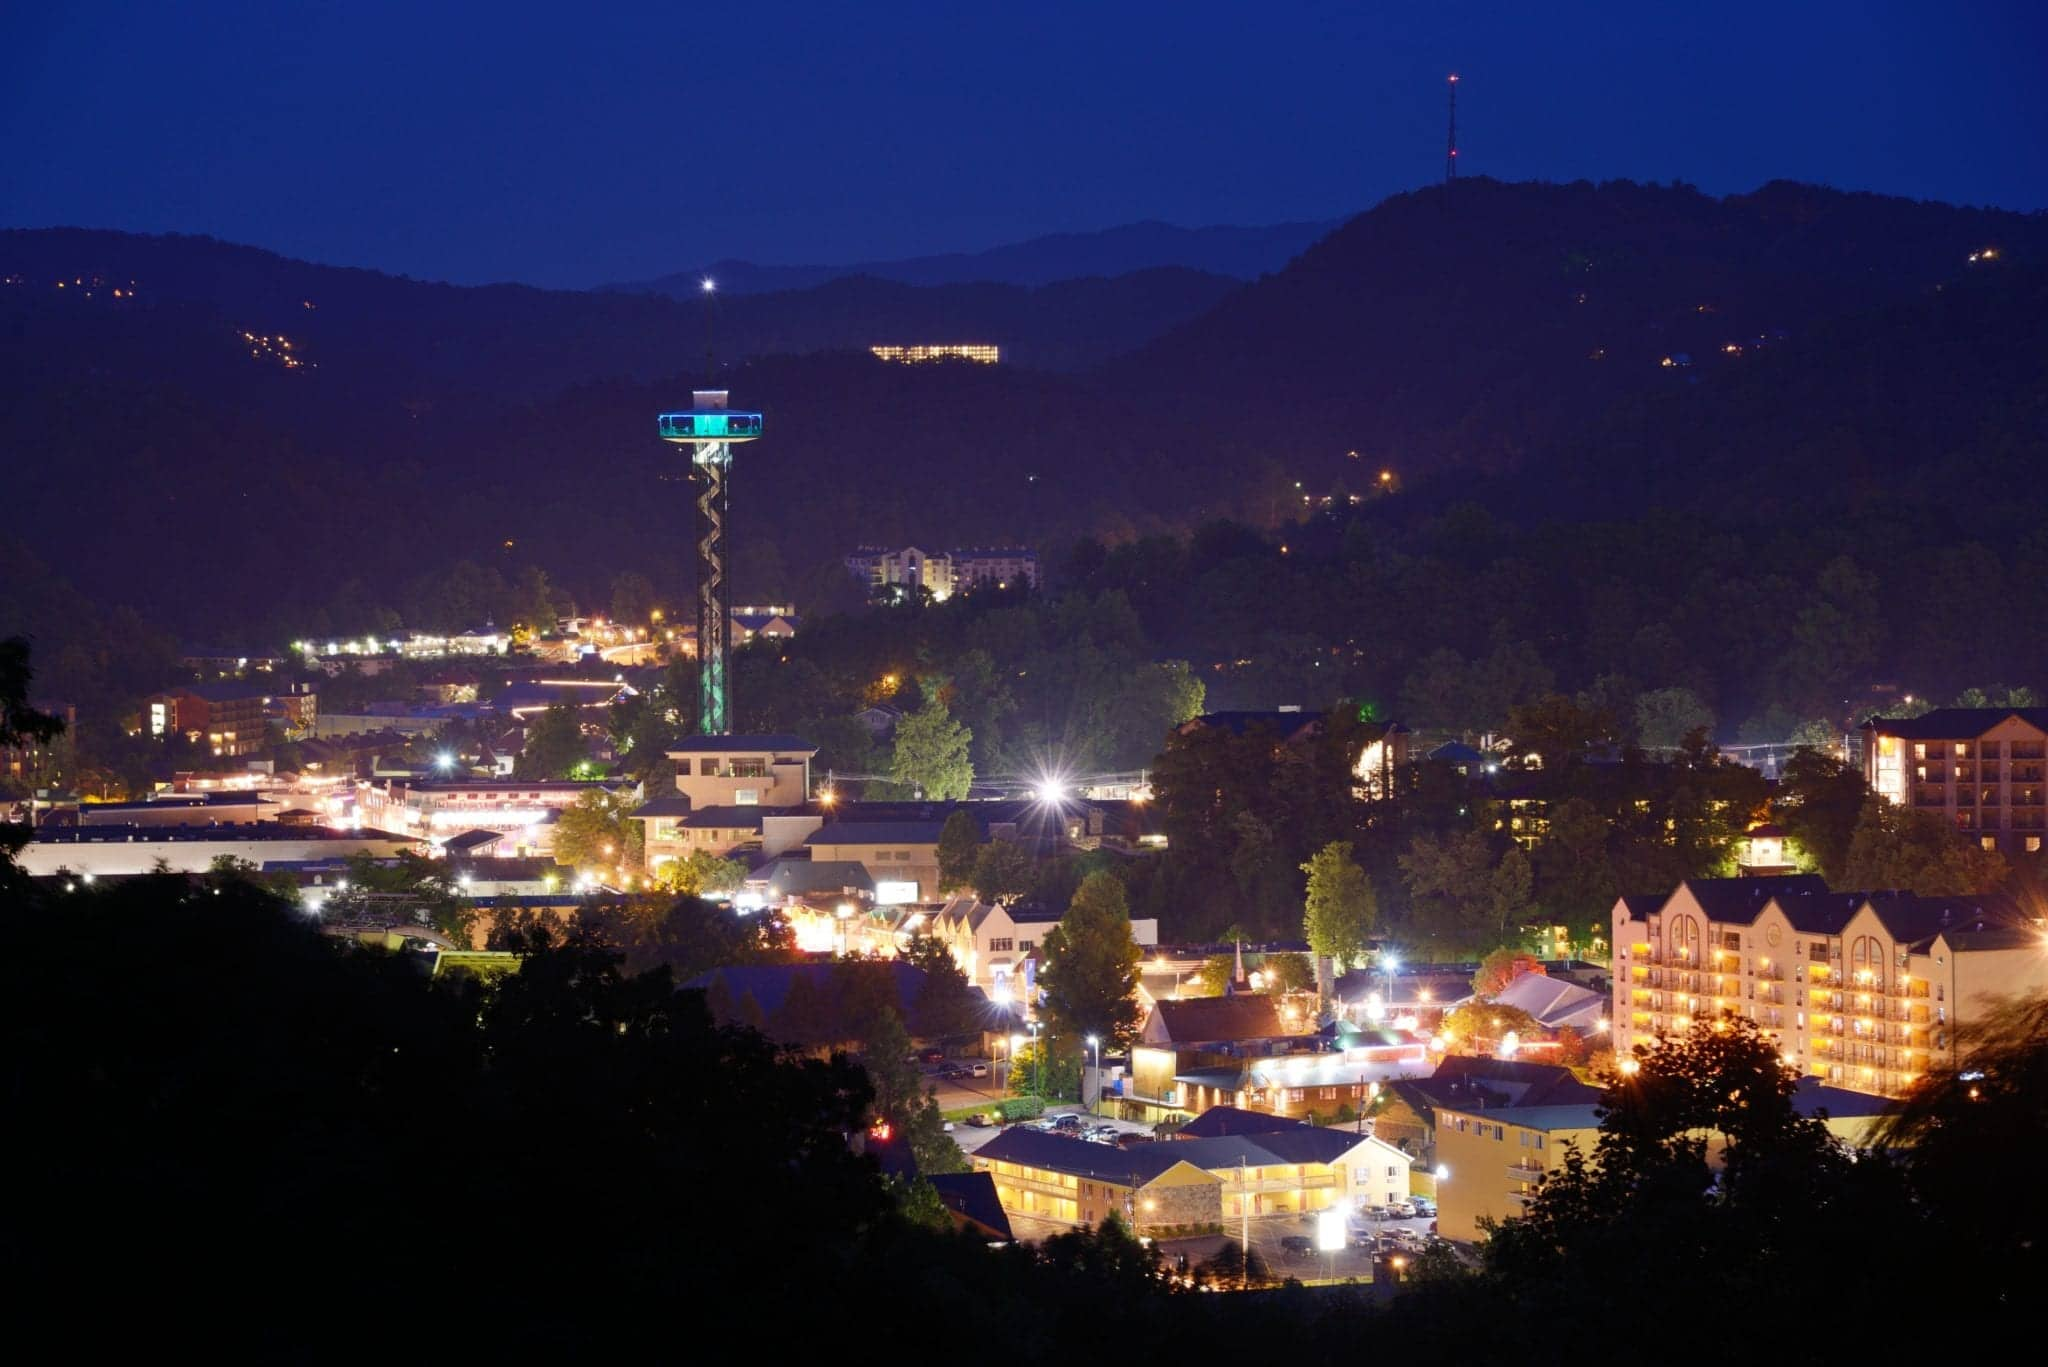 Downtown Gatlinburg skyline at night